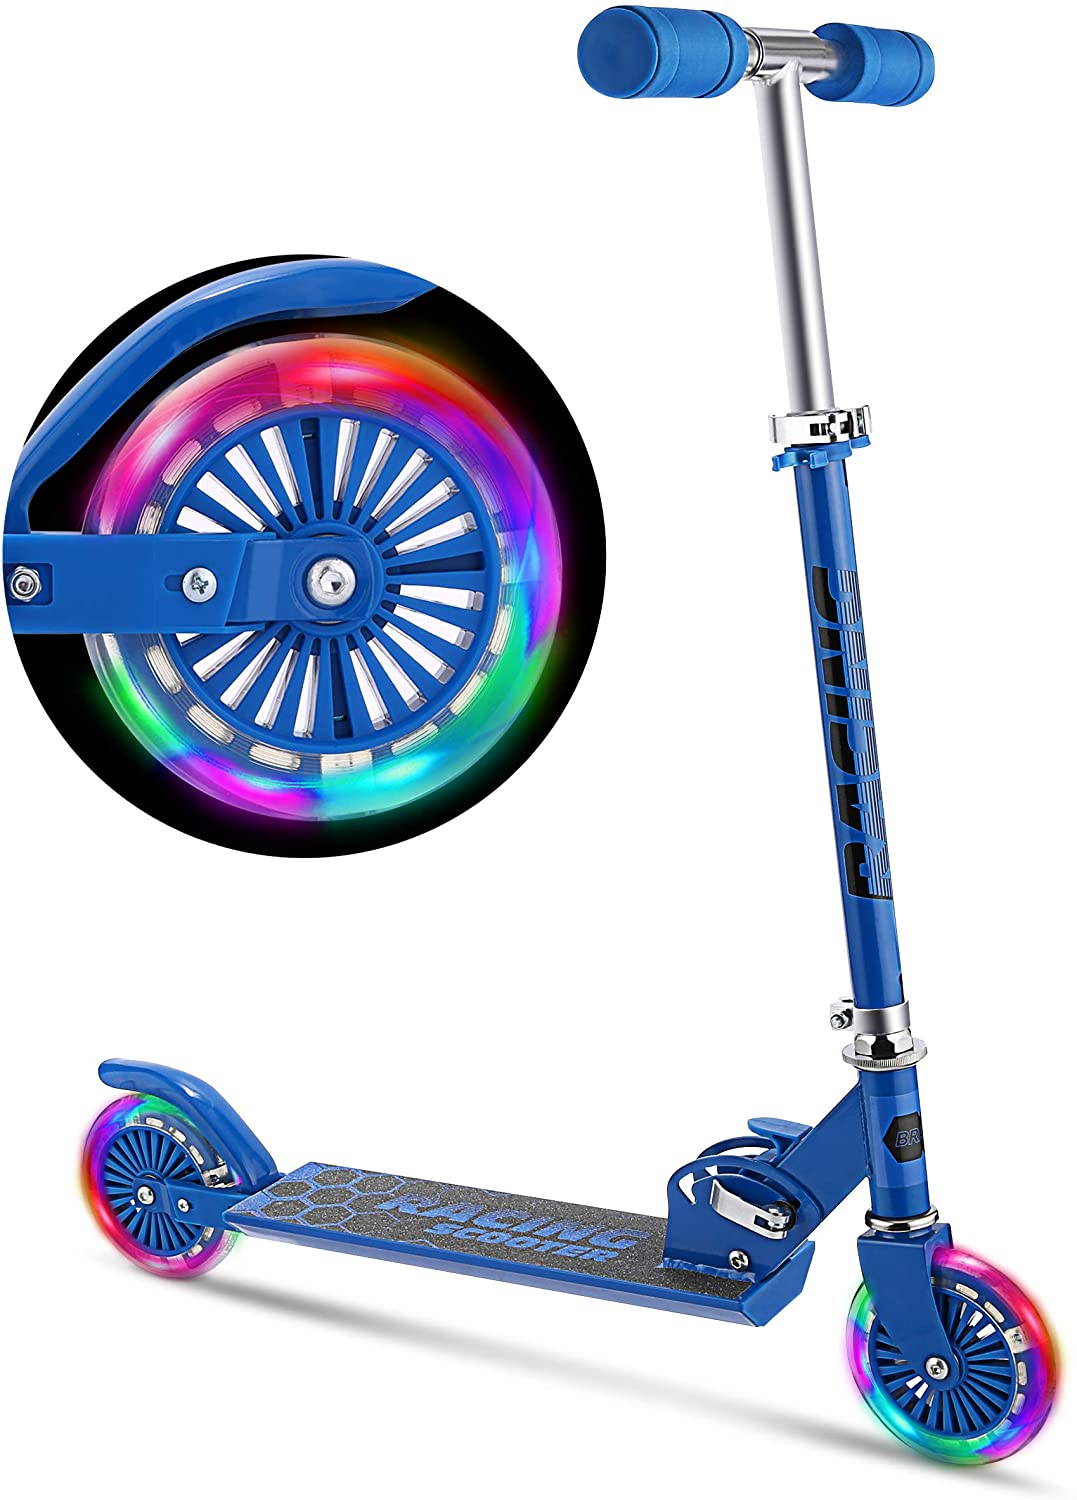 WeSkate Scooter for Kids with LED Light Up Wheels, Adjustable Height Kick Scooters for Boys and Girls, Rear Fender Break|5lb Lightweight Folding Kids Scooter, 110lb Weight Capacity